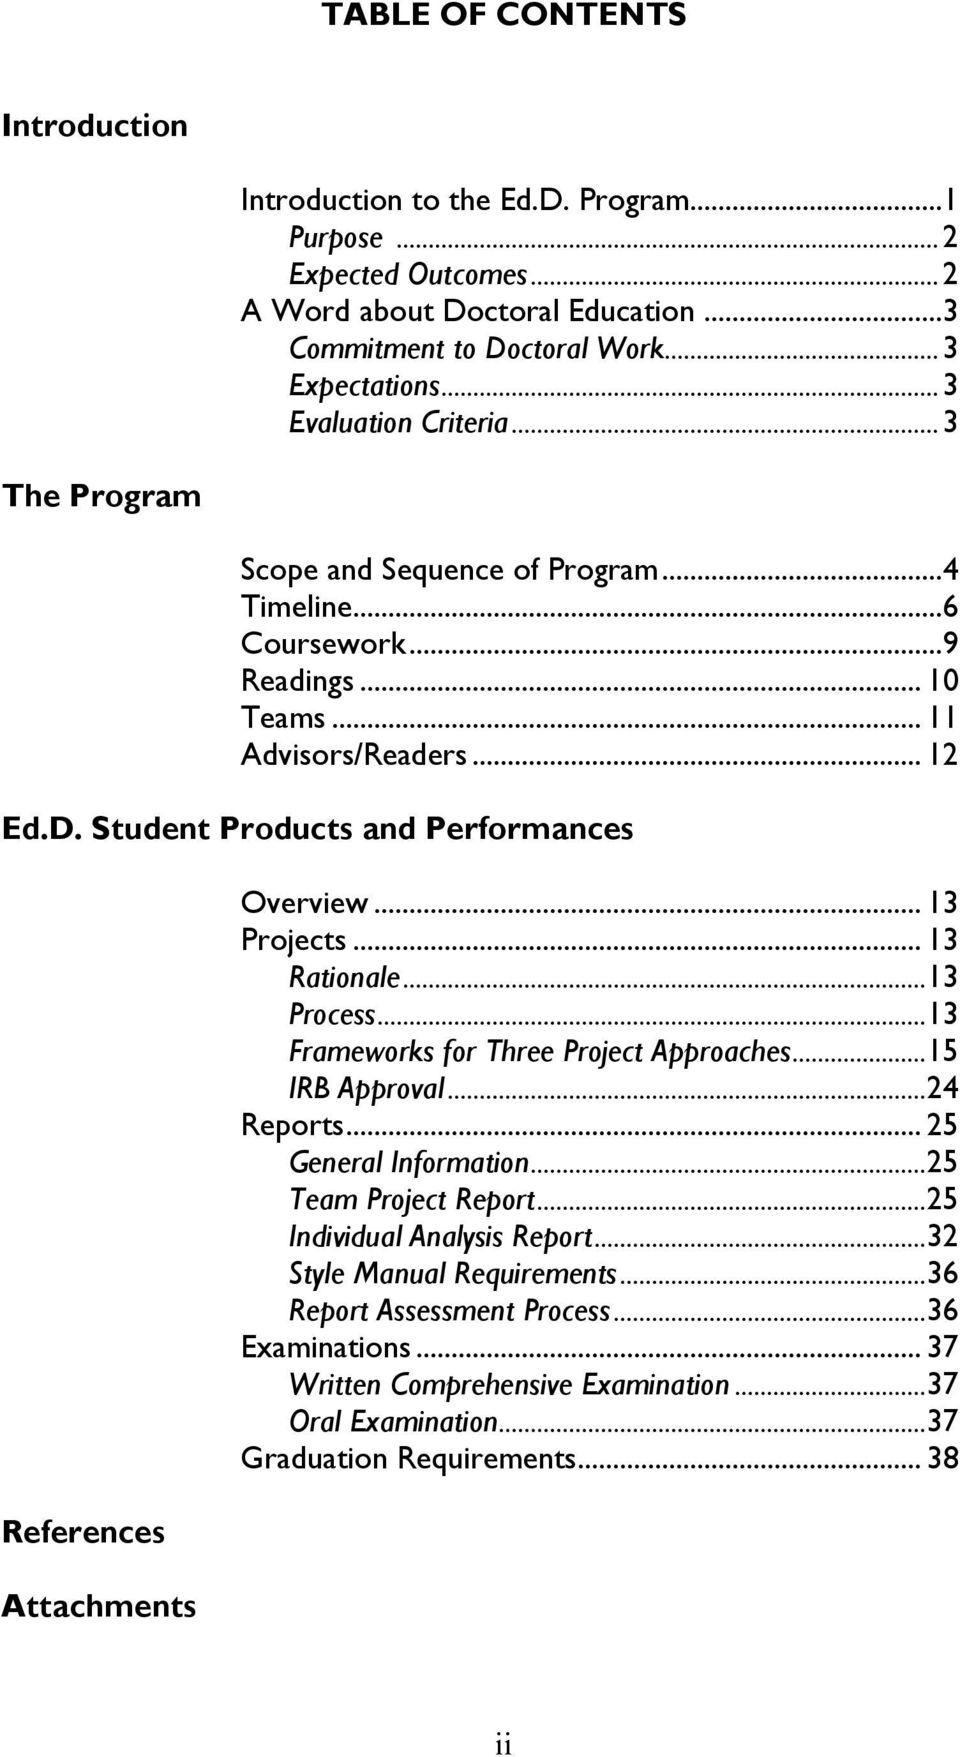 Student Products and Performances References Attachments Overview... 13 Projects... 13 Rationale...13 Process...13 Frameworks for Three Project Approaches...15 IRB Approval...24 Reports.